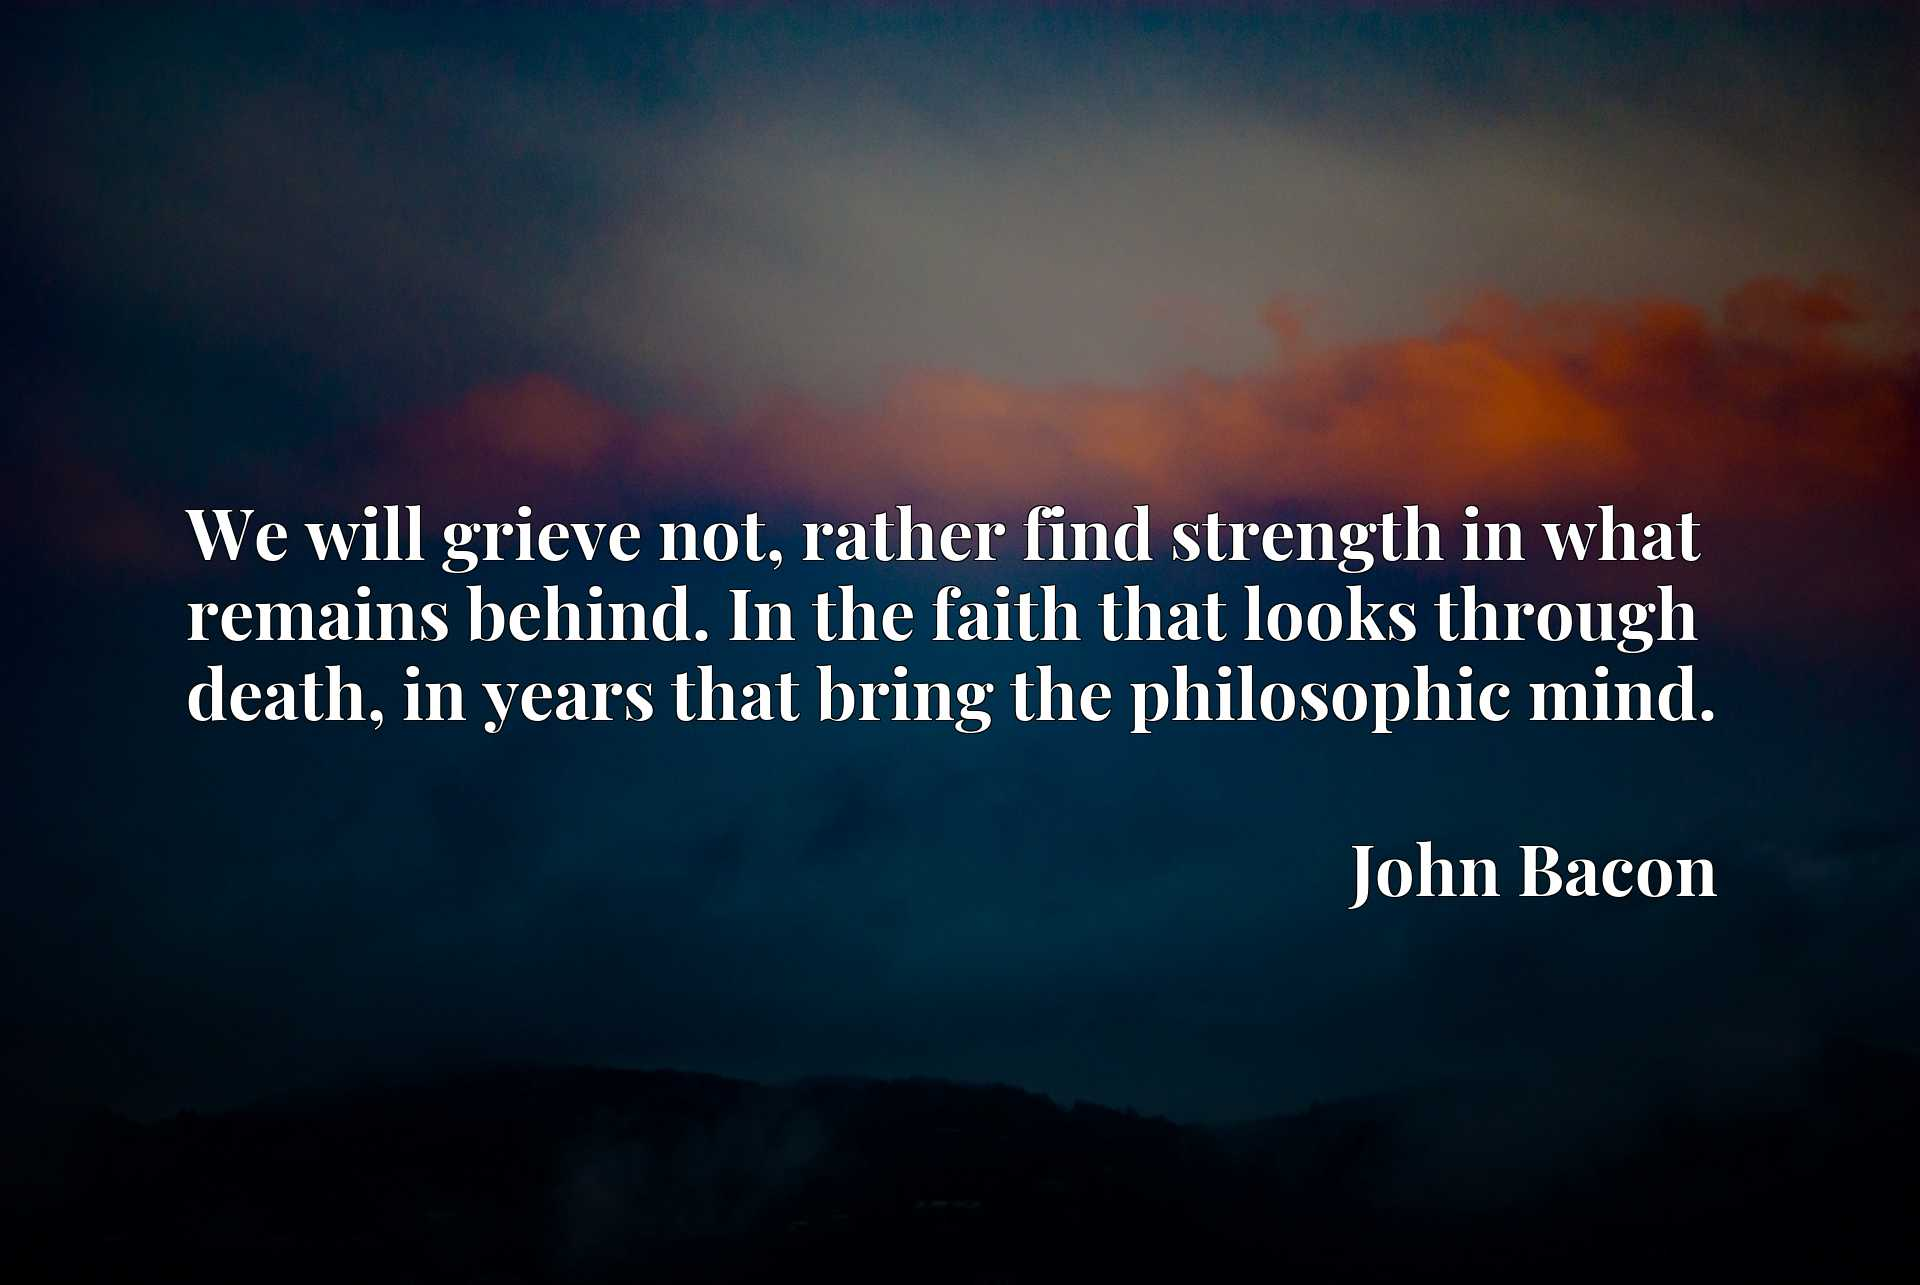 We will grieve not, rather find strength in what remains behind. In the faith that looks through death, in years that bring the philosophic mind.